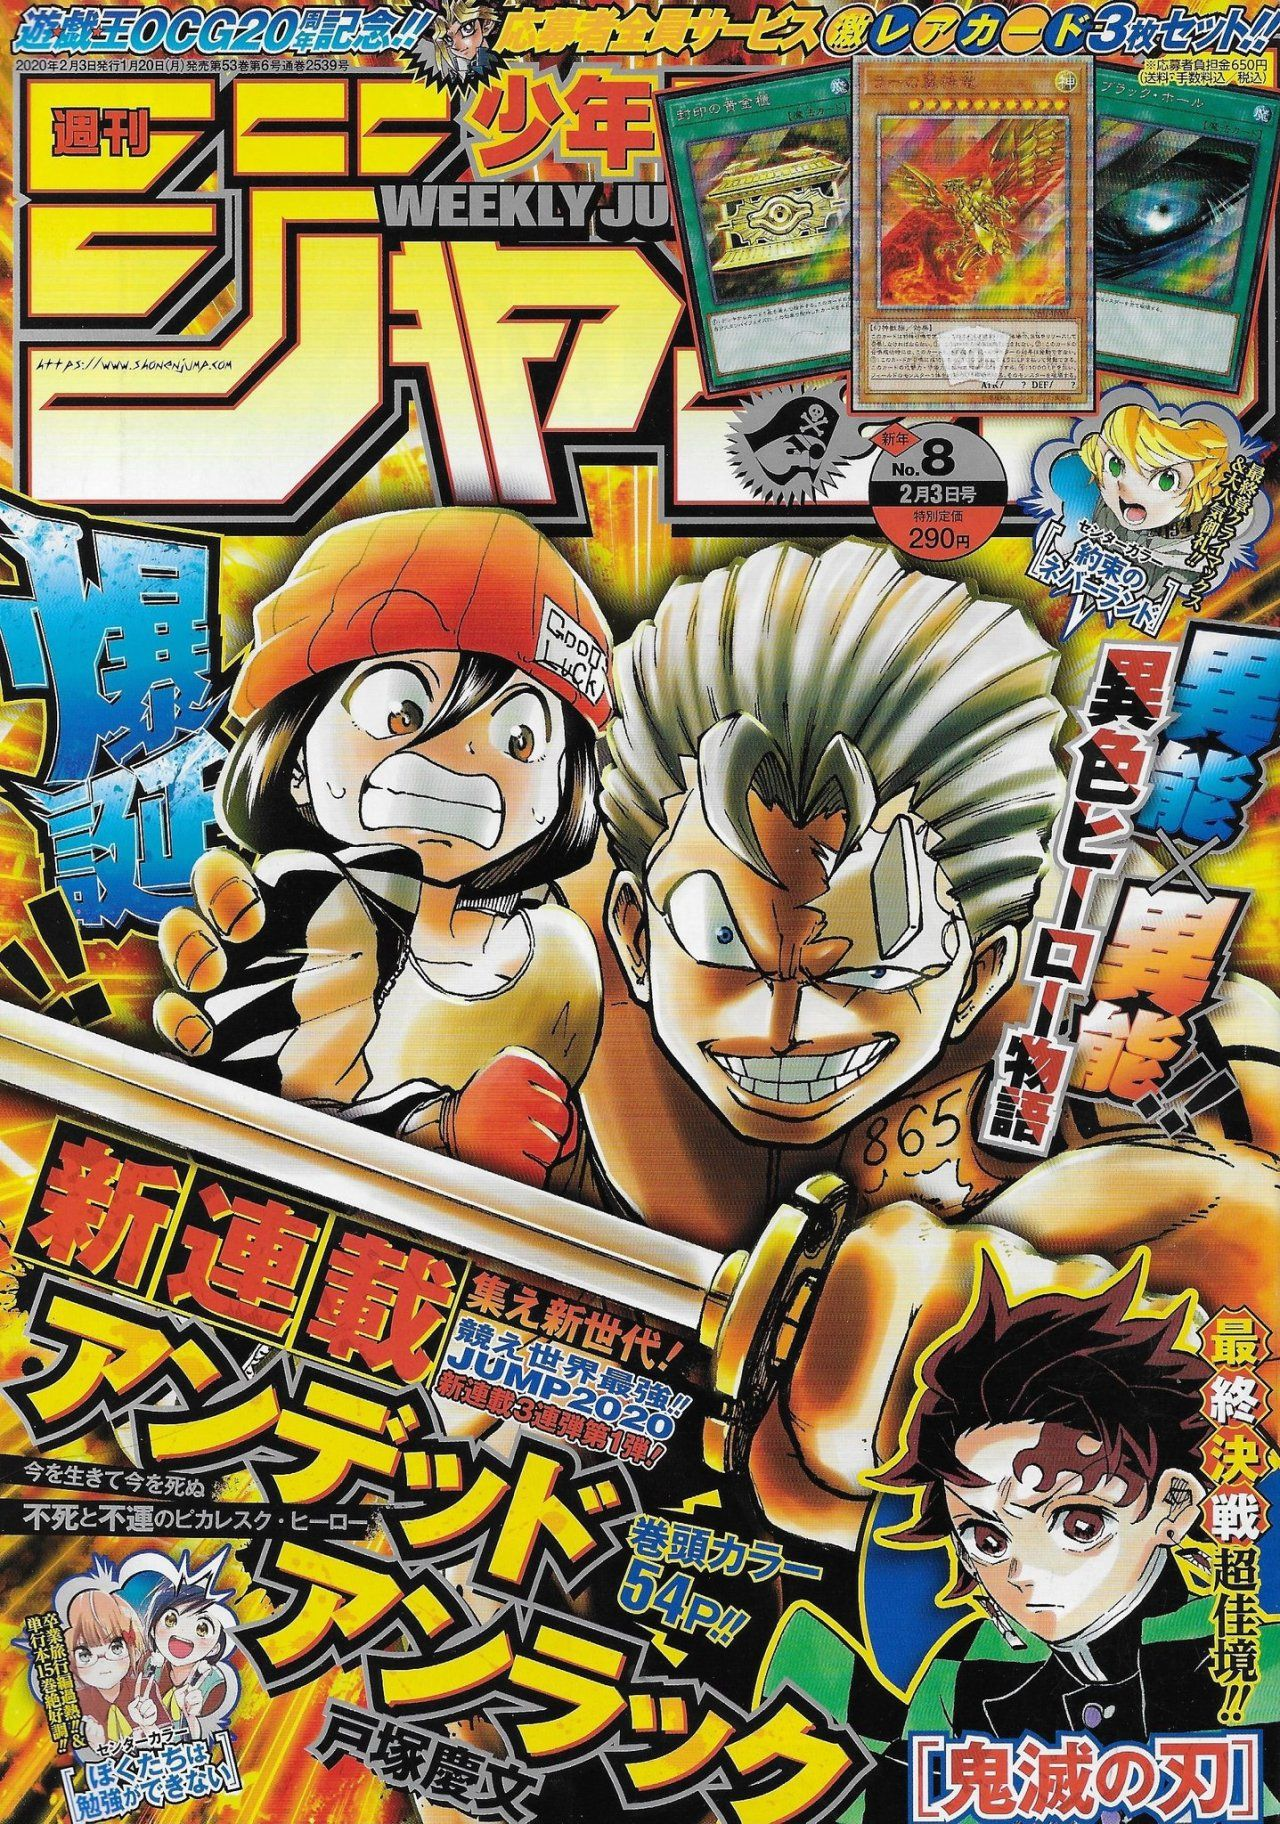 A blog about my interests in 2020 Shonen, Weekly shonen